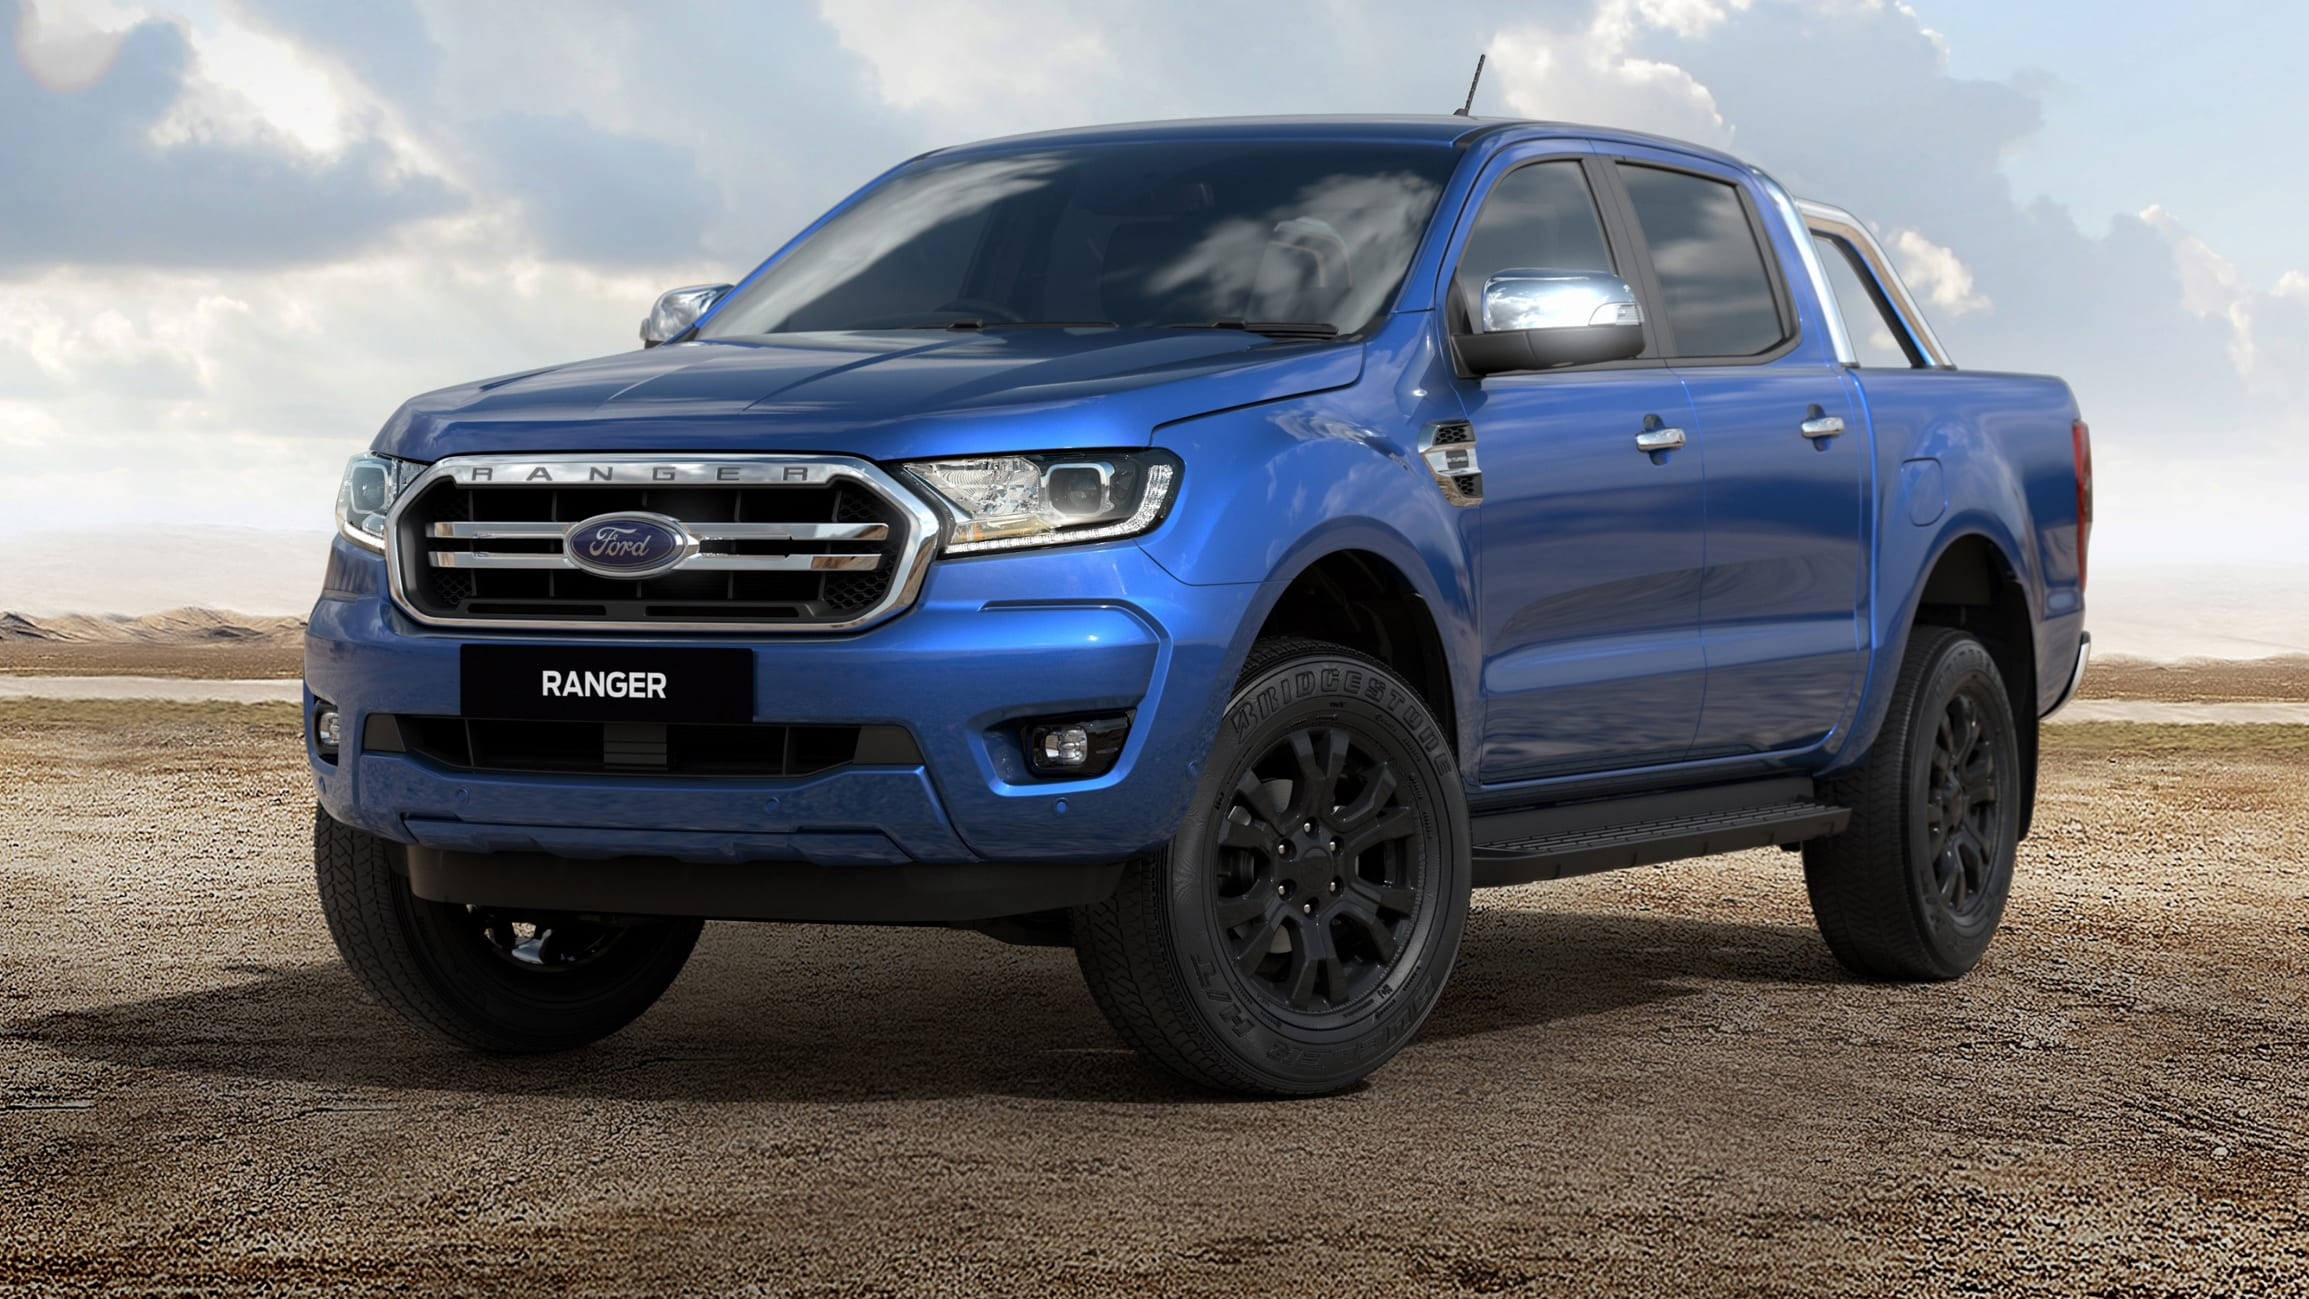 2020 Ford Ranger Prices Raised New Xl And Xlt Editions Announced Caradvice